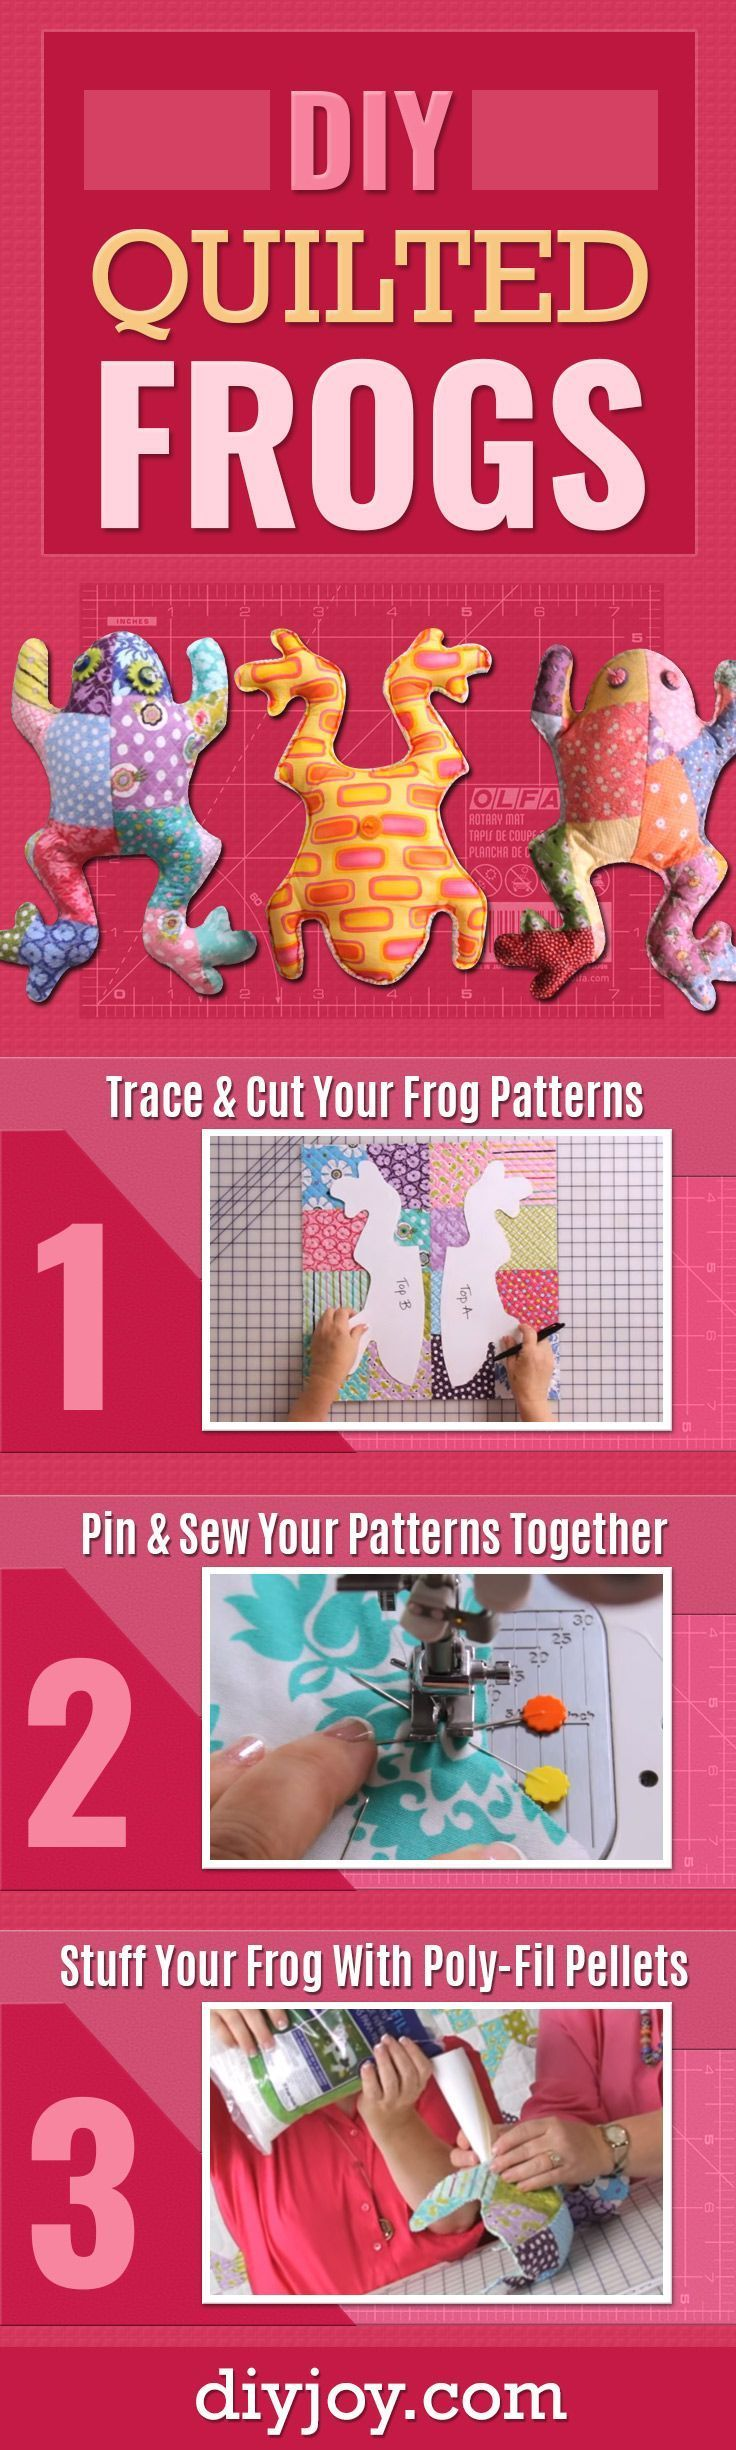 DIY Quilted Frogs - Cute Sewing Projects and Quilting Tutorials Make Creative DIY Gifts for Christmas Presents - Easy Sewing Patterns and Step by Step Tutorials - Home Decor and Crafts for Women